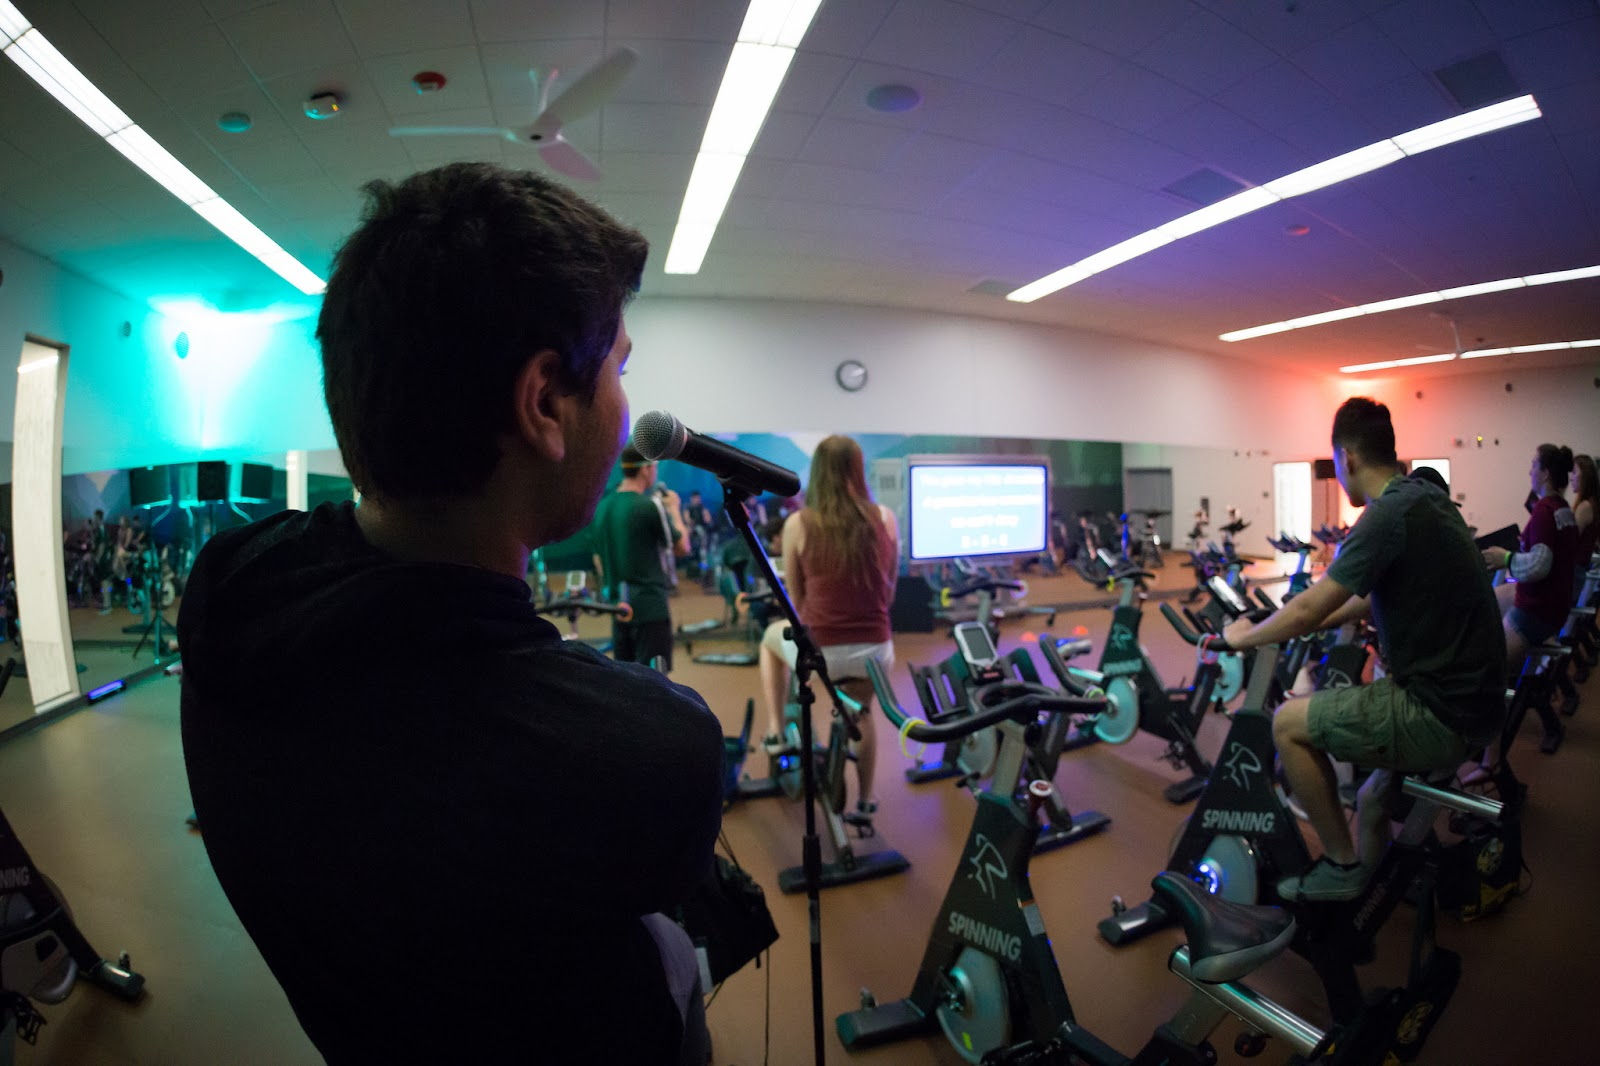 A student featured singing on a microphone while other students are spinning on spin bikes at the BRIC.